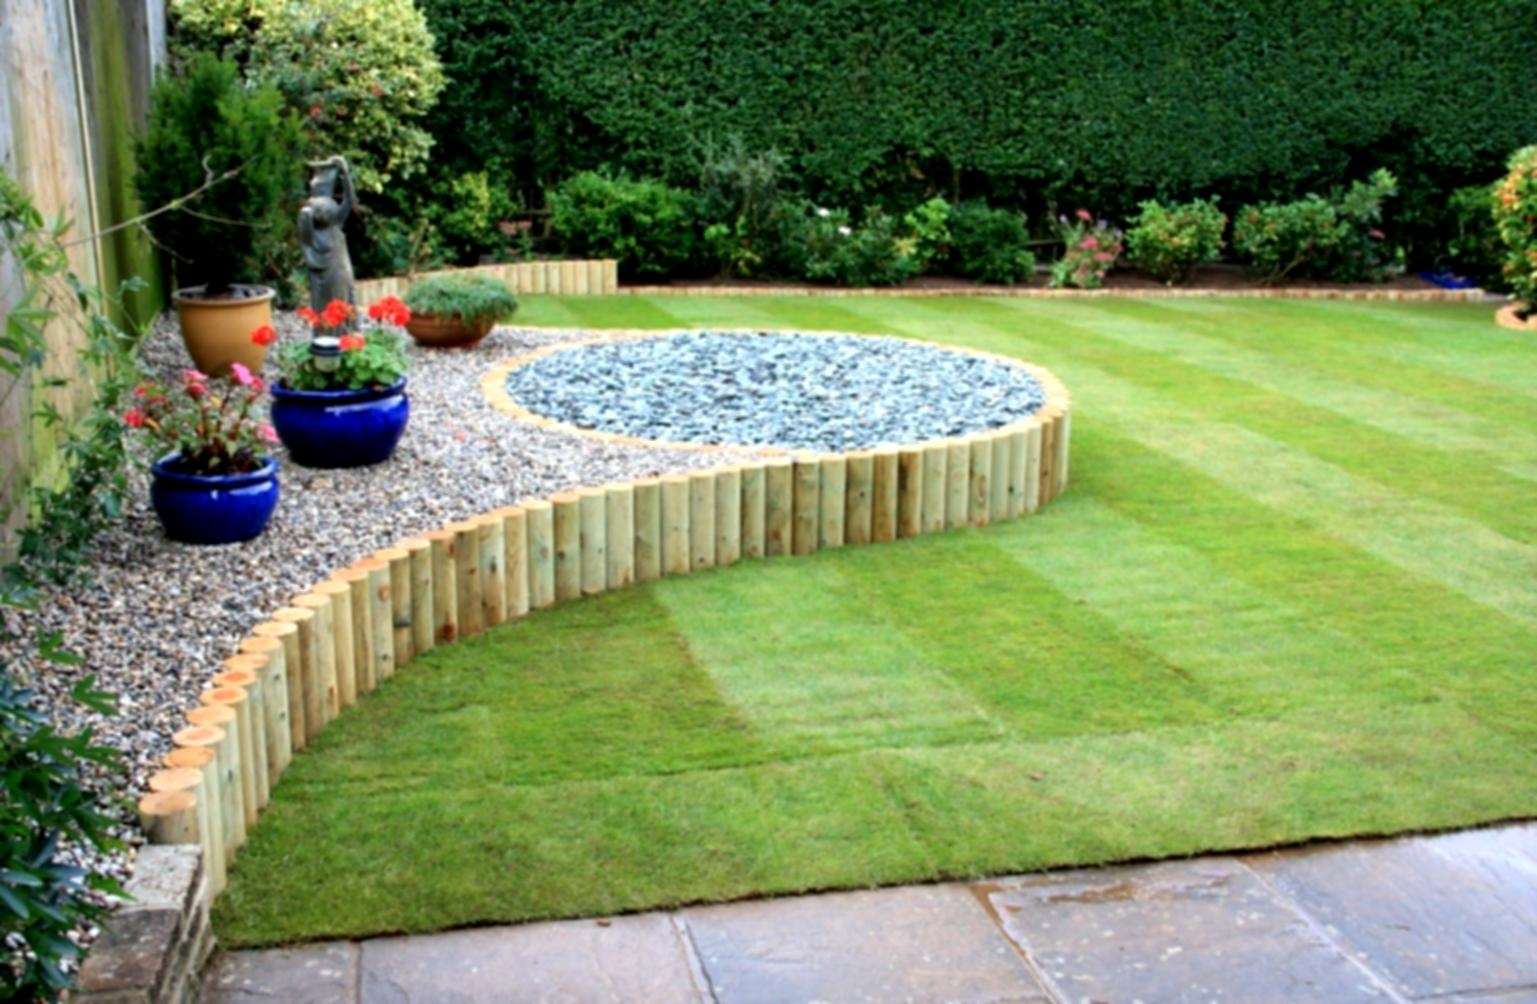 Garden Landscaping Ideas Backyard Country Nz | Revistaalmazara for Backyard Garden Landscape Ideas